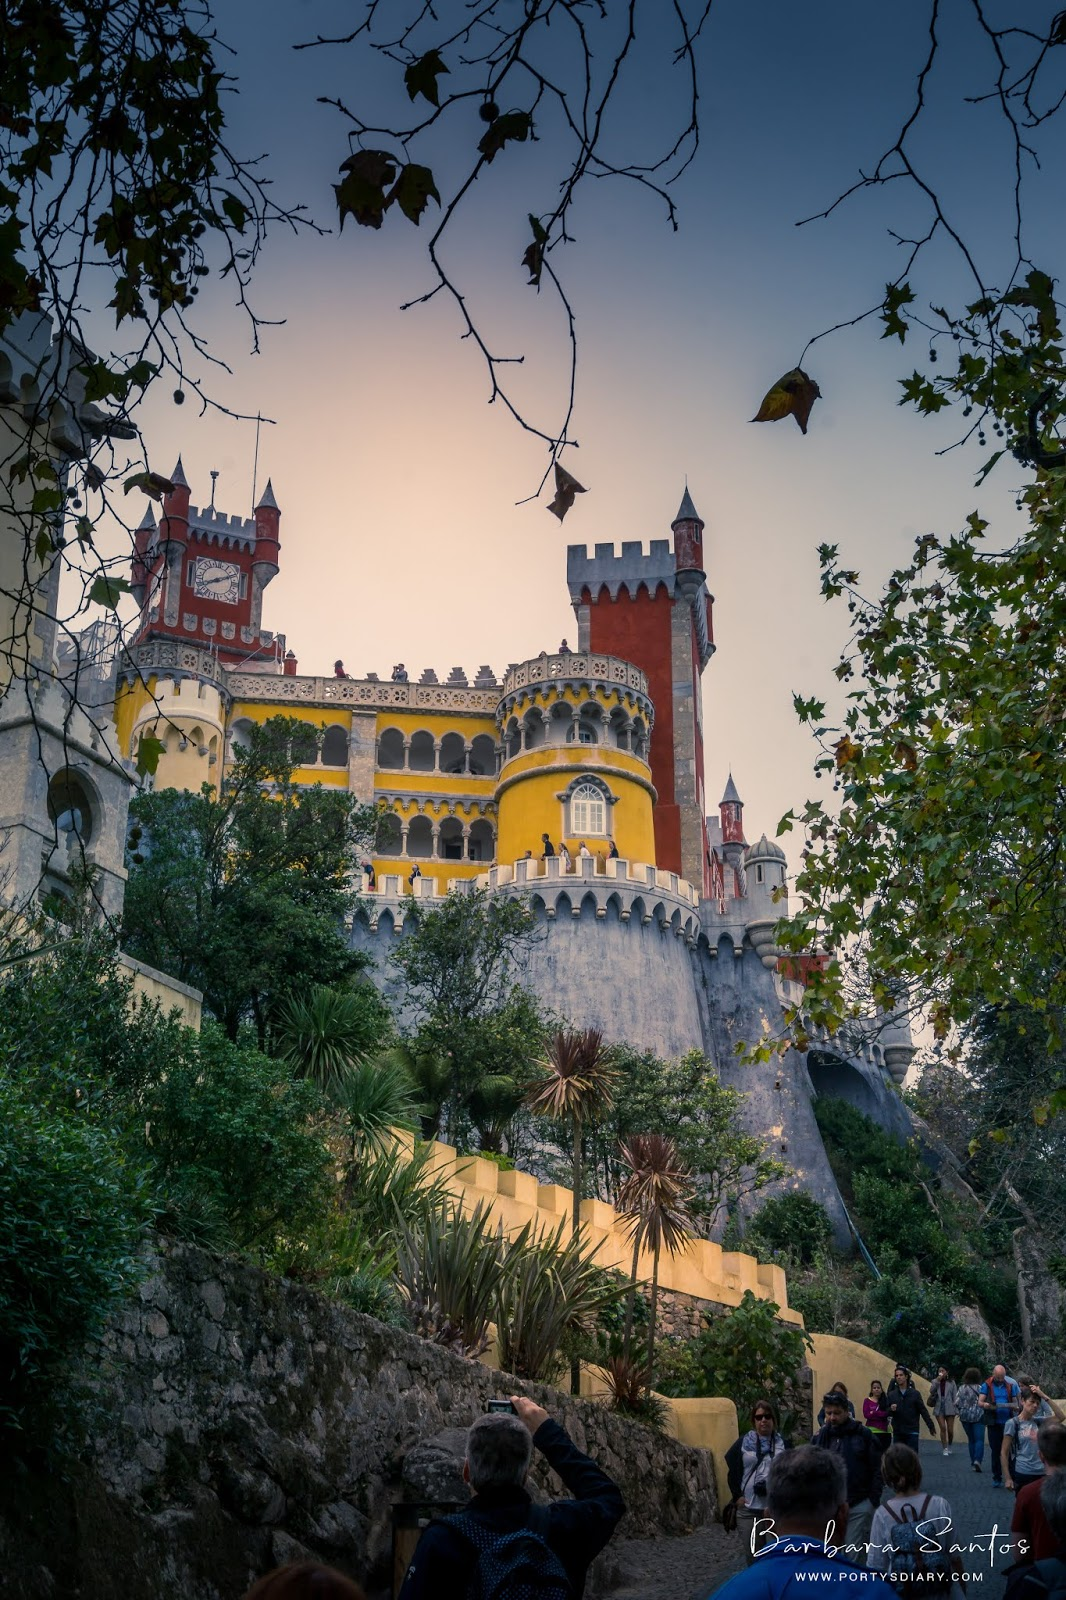 Travel | Come along with me on a day trip to Sintra, Portugal.